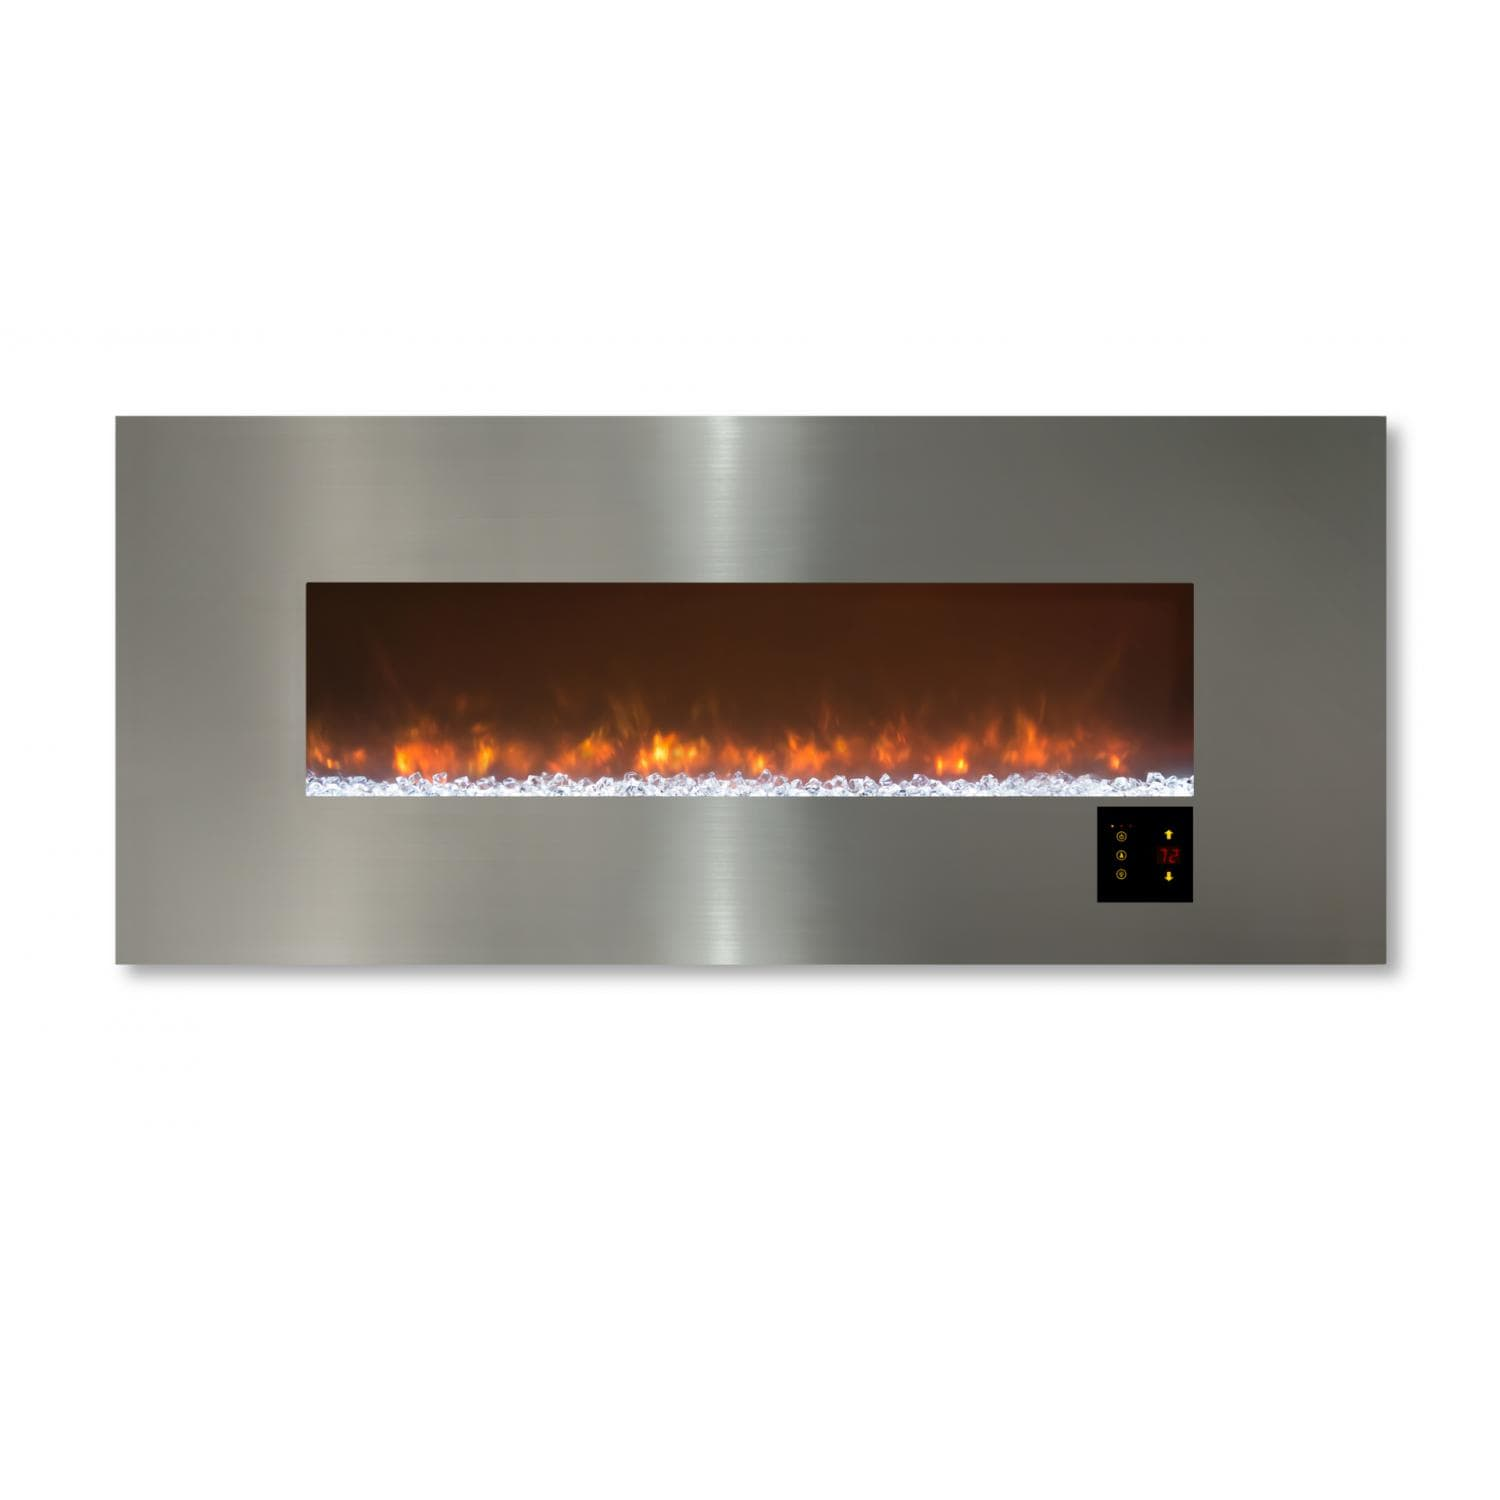 Modern Flames 60-Inch Ambiance CLX2 Electric Fireplace With Stainless Steel  Front - Orange Flames With Glass Media - Modern Flames Ambiance CLX2 60-Inch Electric Fireplace With